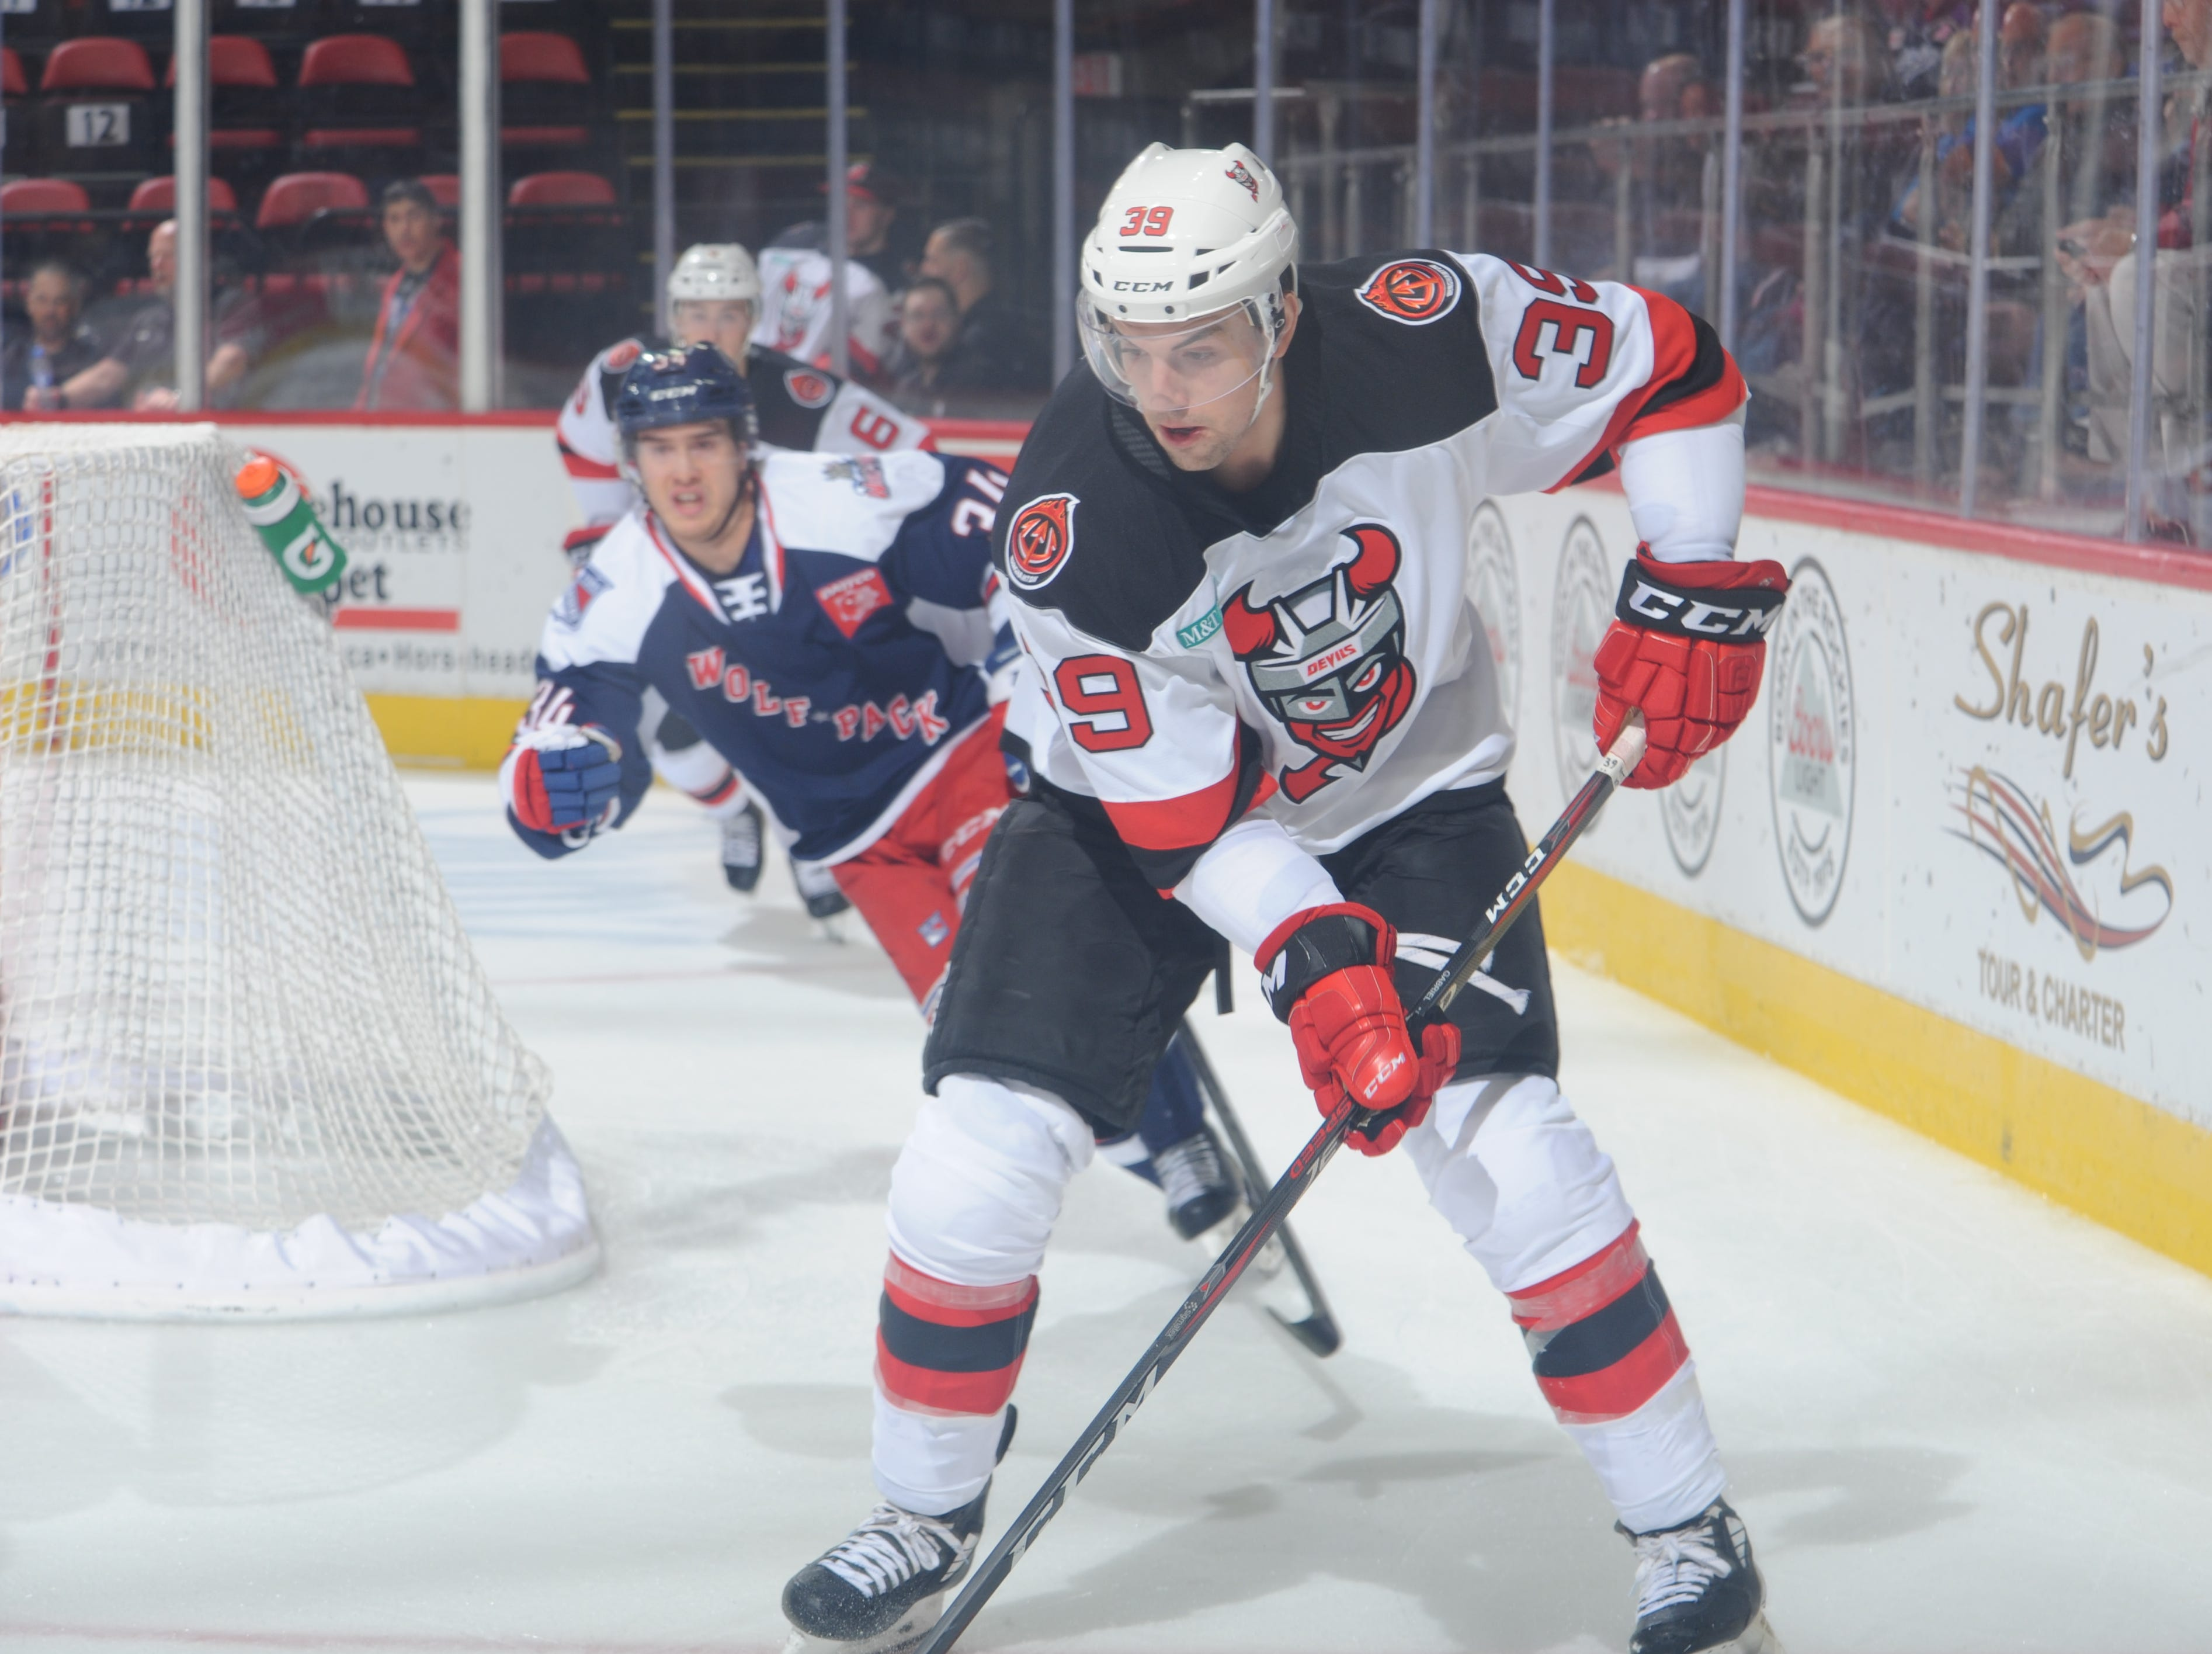 The Binghamton Devils' Kurtis Gabriel controls the puck during the first period of Wednesday's game against the Hartford Wolf Pack at Floyd L. Maines Veterans Memorial Arena.